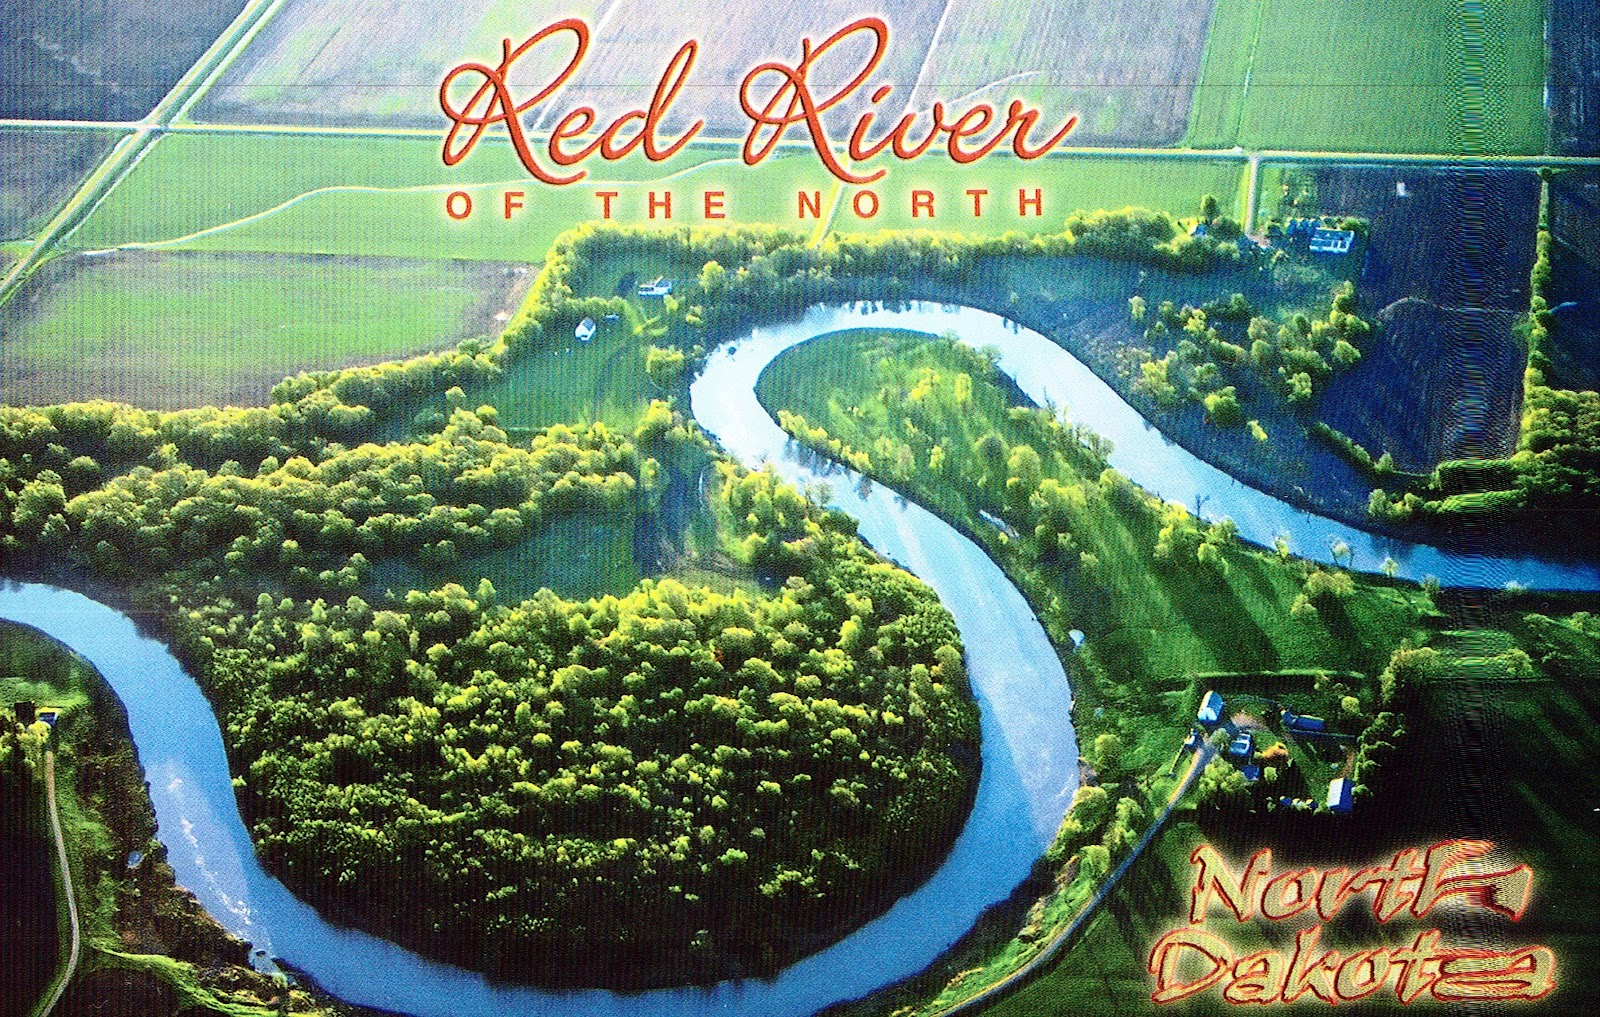 red river milf personals Please contact us anytime we look forward to hearing from you you can use the contact us page or use any of the following information red river singles.